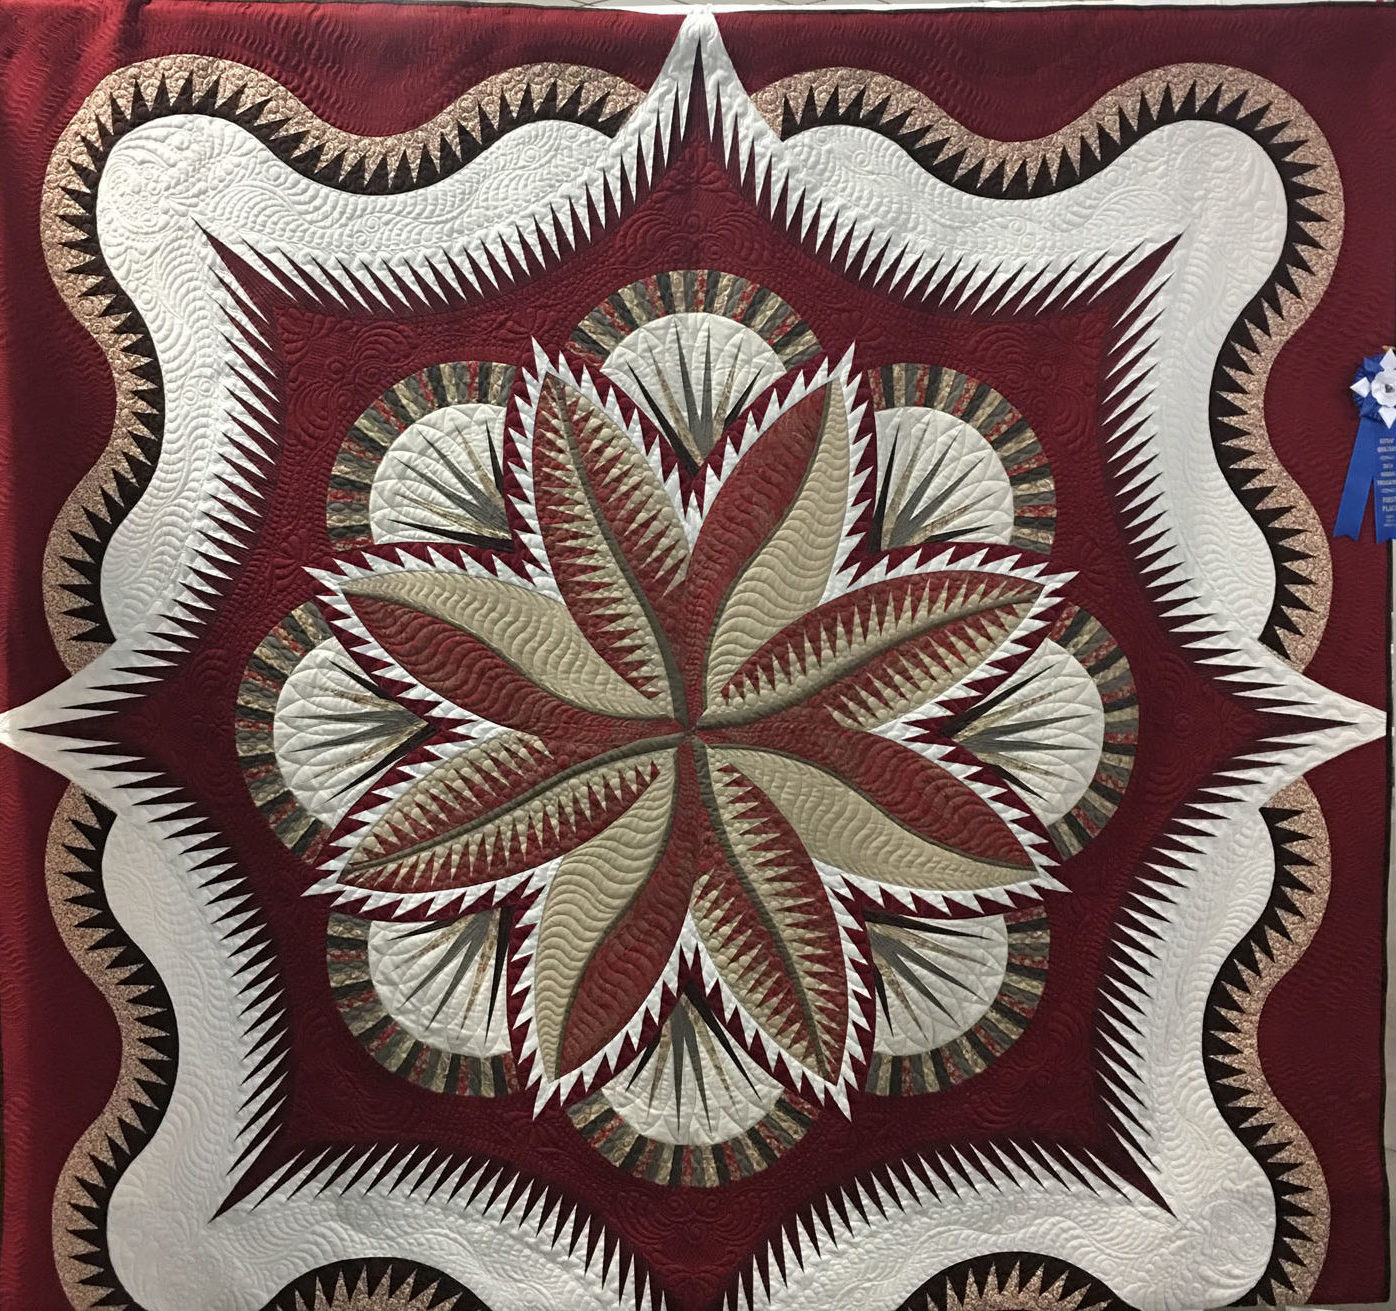 "108 ""Tumble"" made and quilted by Pam Knight, 1st Place Winner Large Individual Quilt, Kitsap Quilt Show 2018"